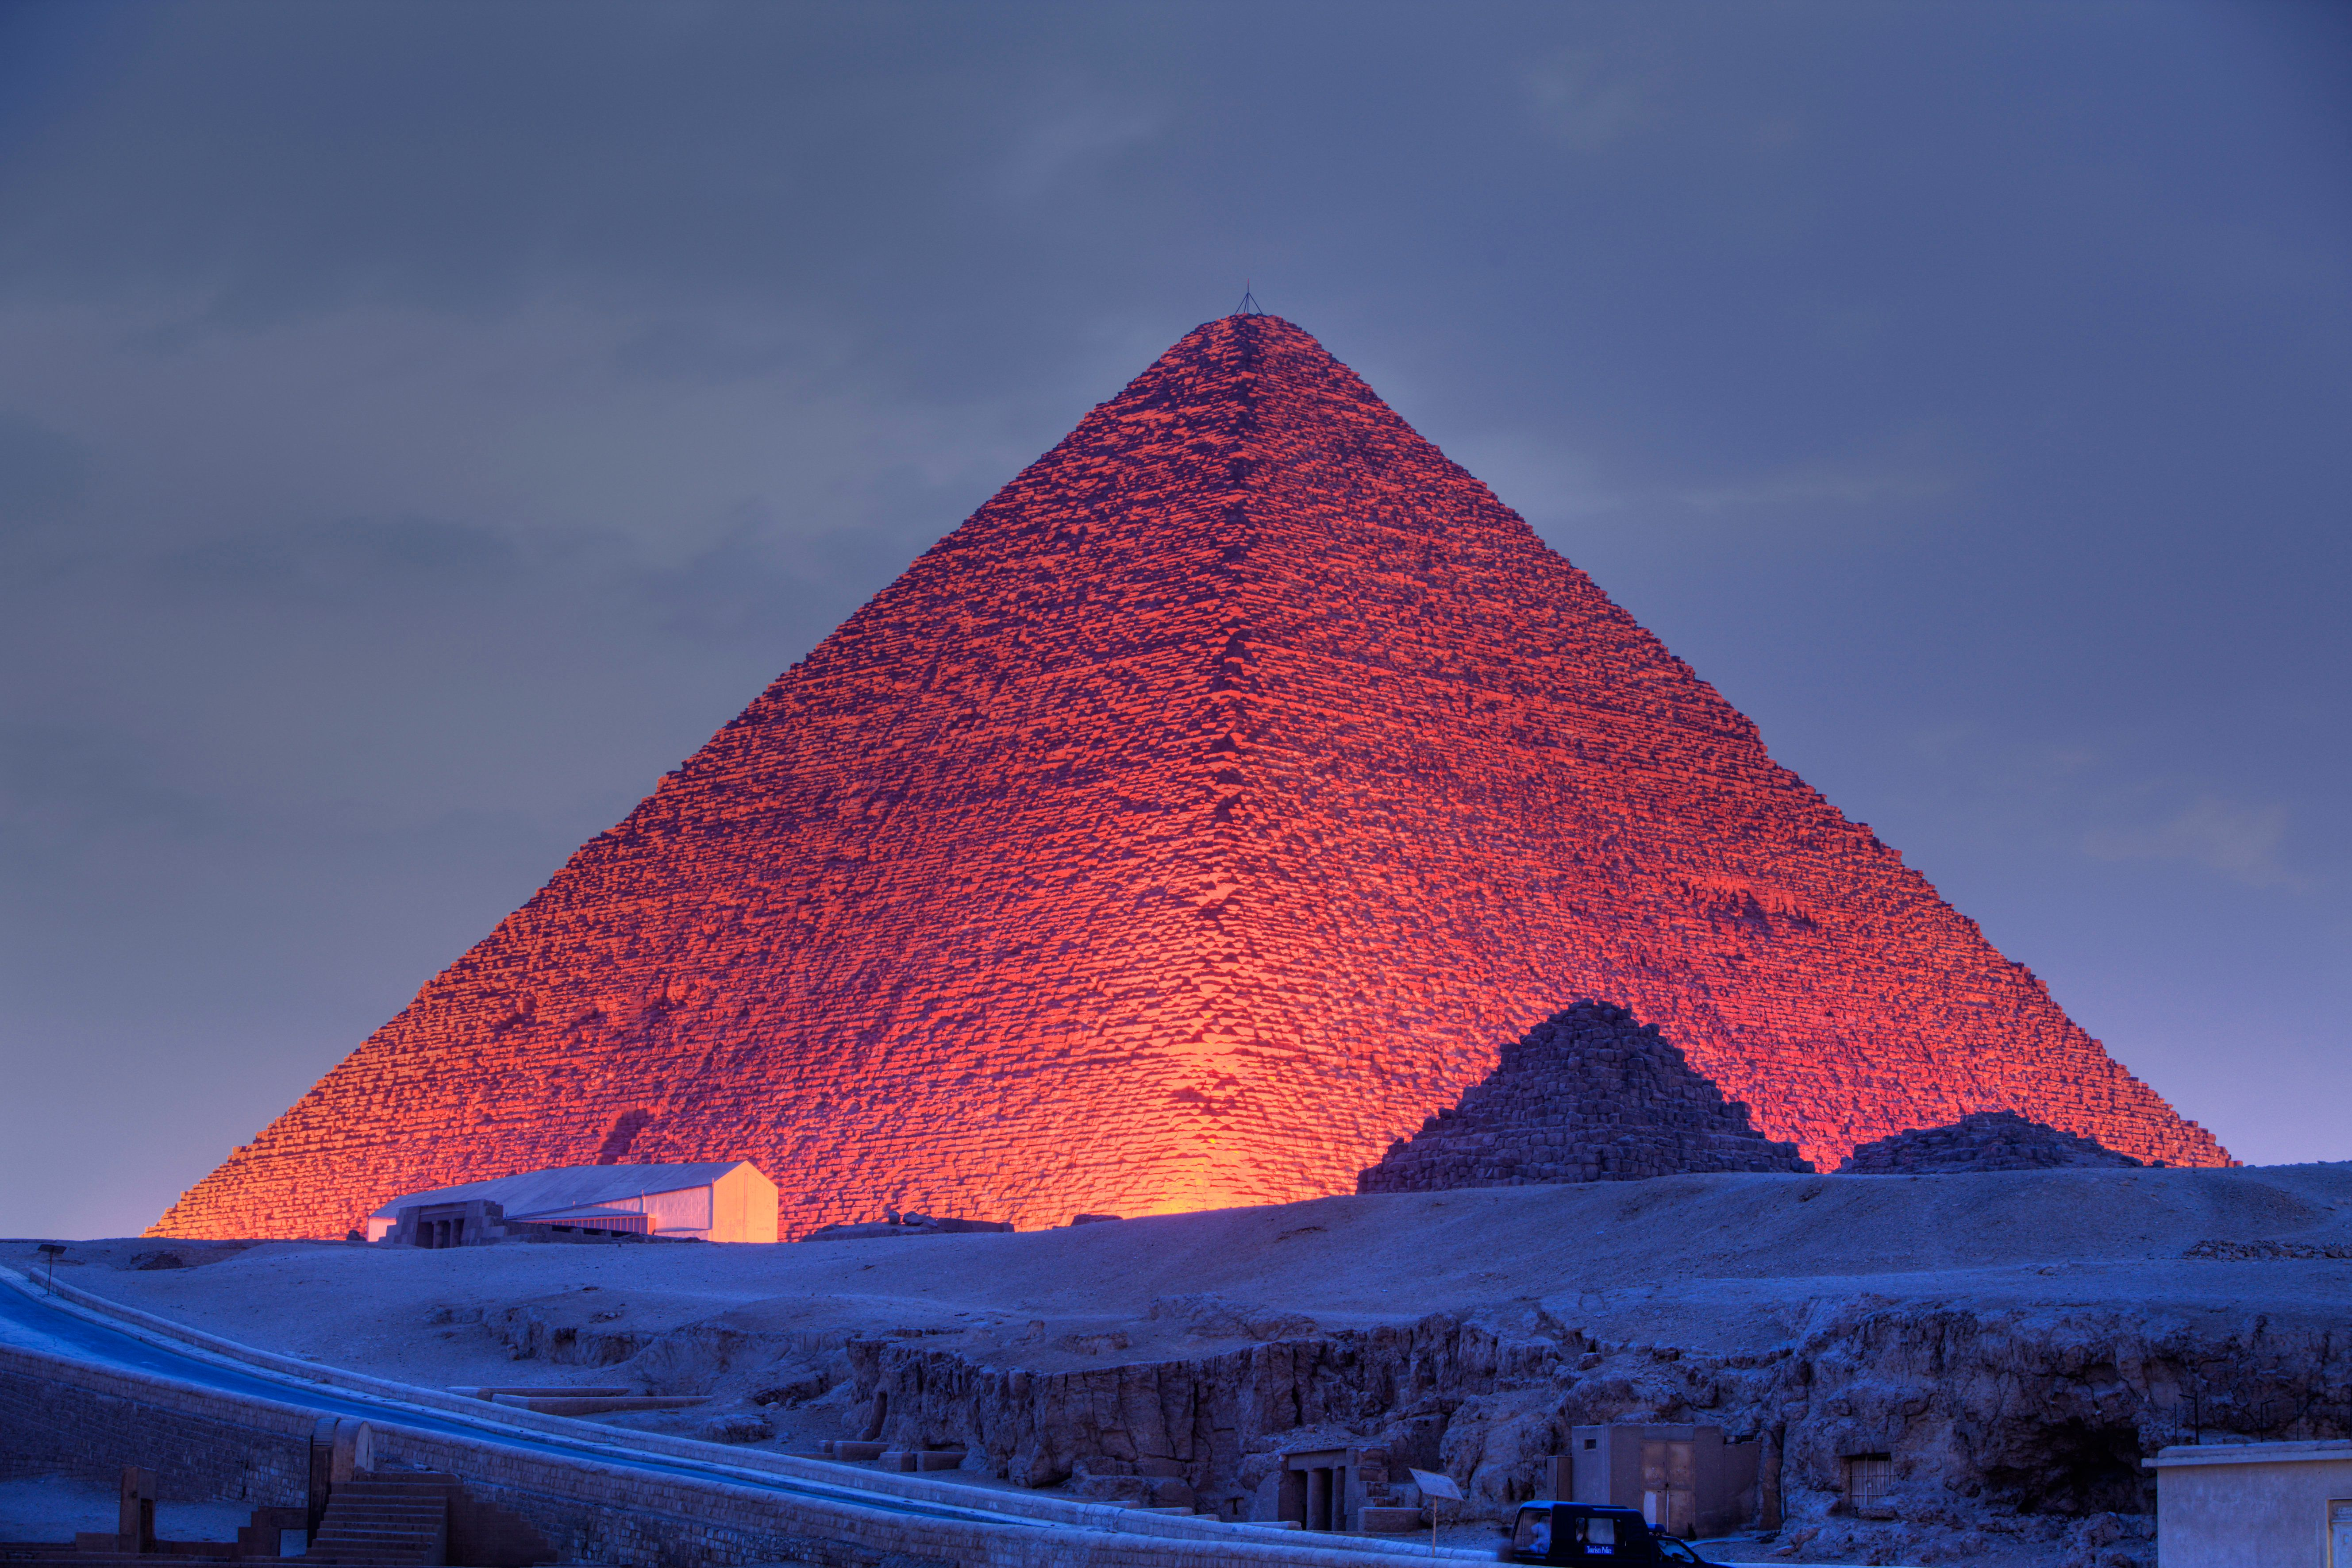 (GERMANY OUT) Light and Sound Show at Pyramids of Giza, Cairo, Egypt  (Photo by Reinhard Dirscherl/ullstein bild via Getty Images)